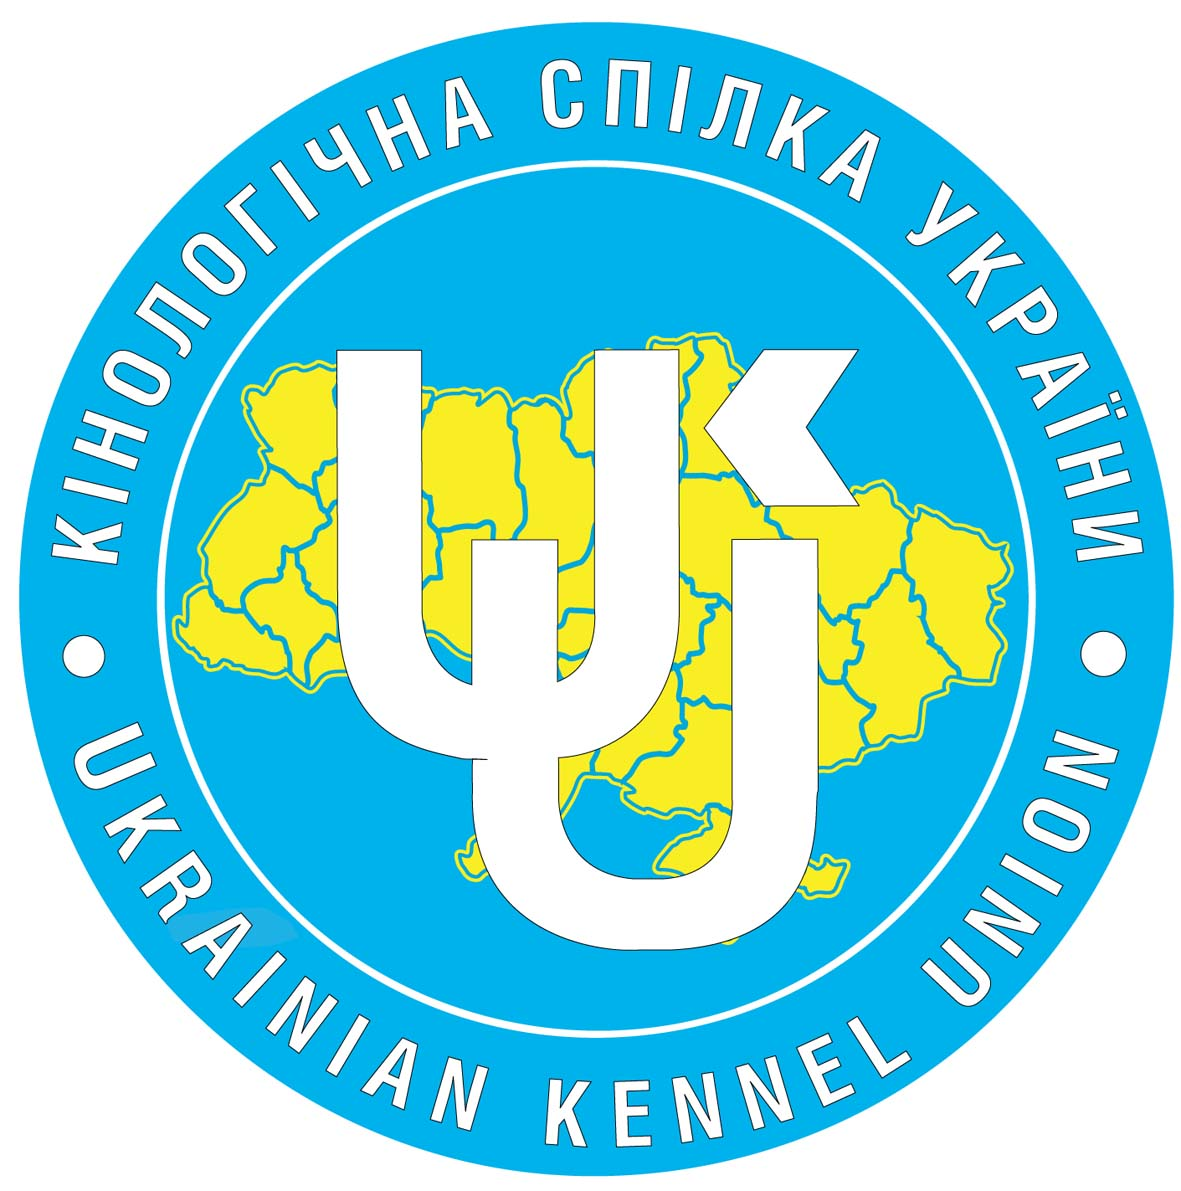 Ukrainian Kennel Union